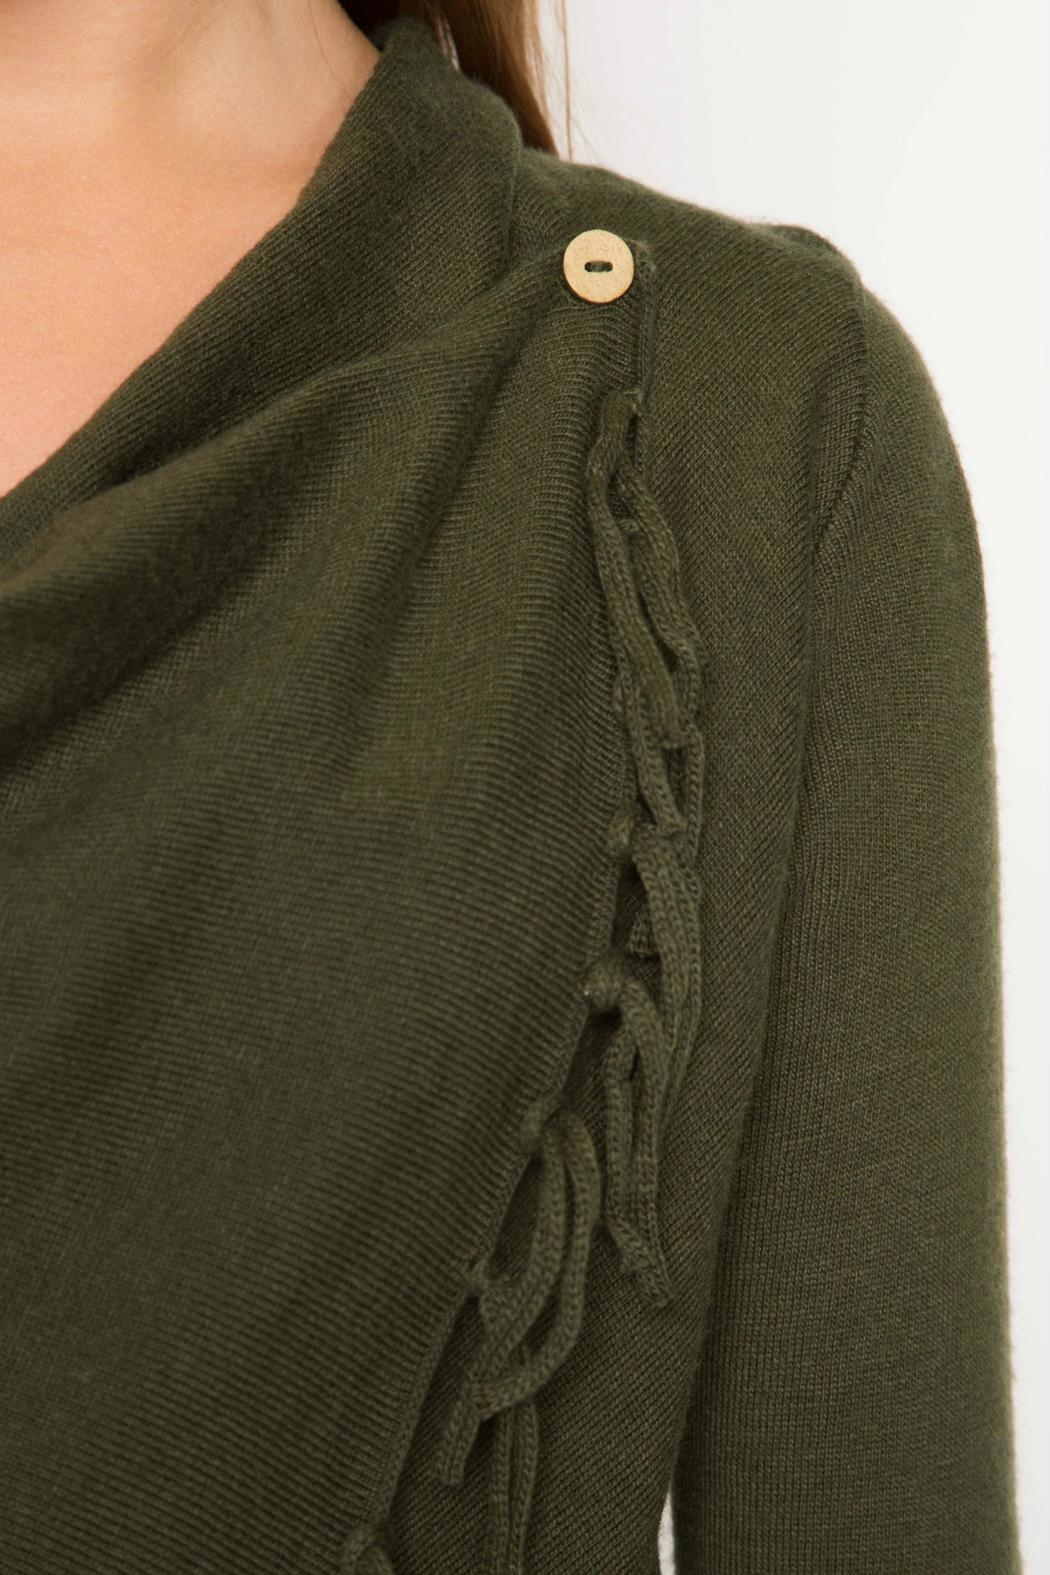 She Sky Fringe Asymmetrical Cardigan From Long Island By Epic